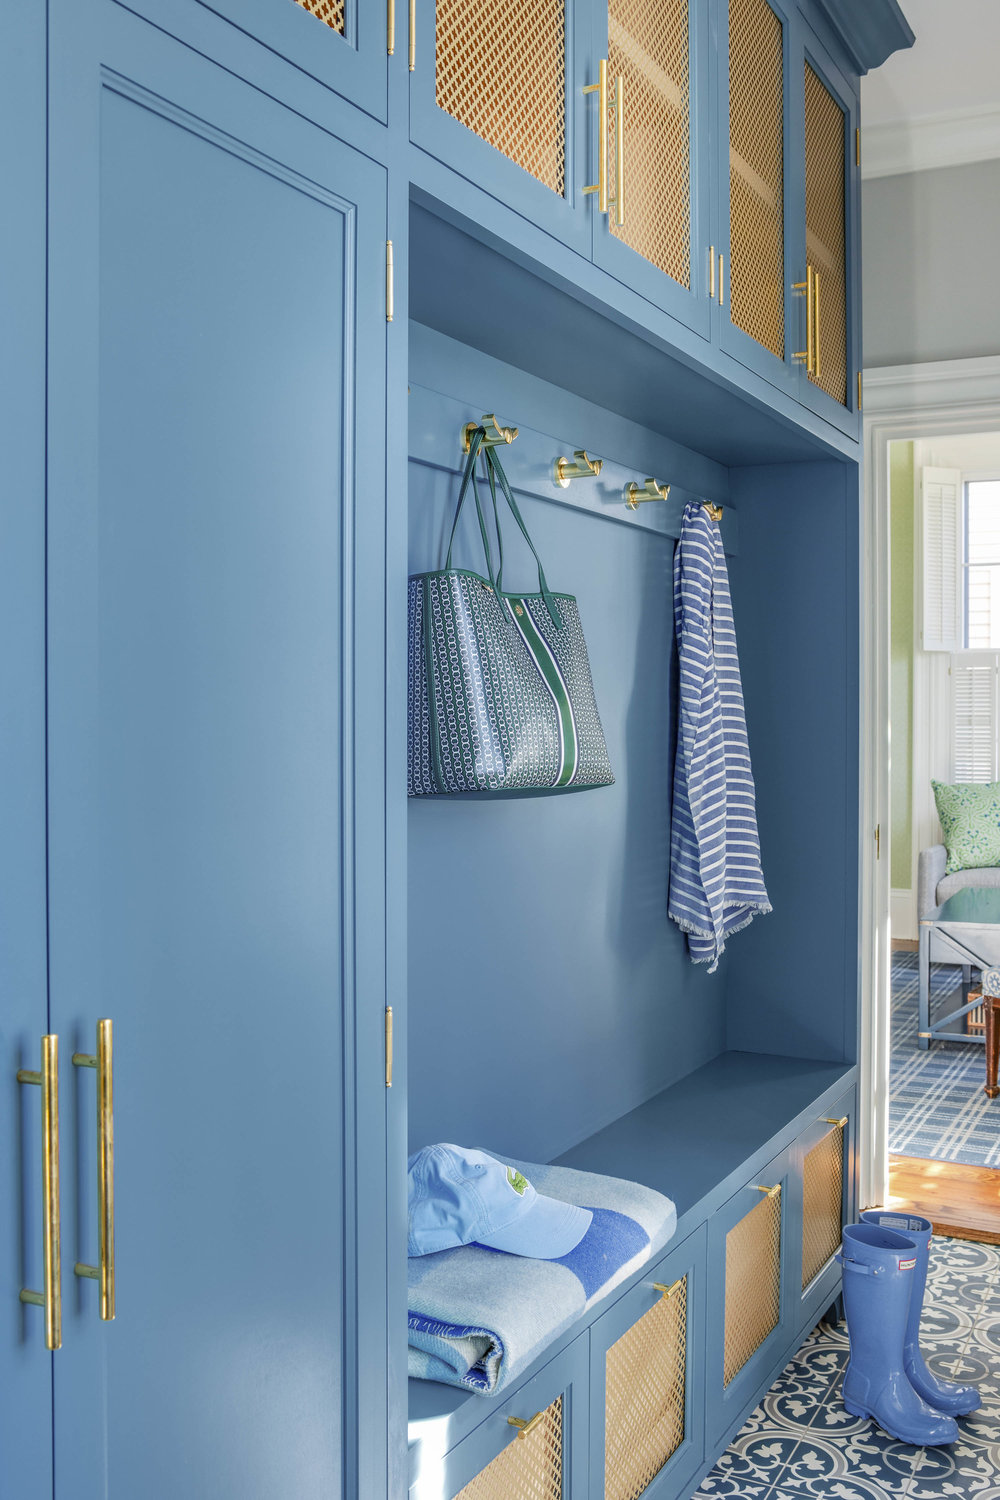 Digs Design, Digs, Digs Design Company, Interior Design, Jocelyn Chiappone, Rhode Island, Newport, Providence, Benefit Street, Mudroom, Blue Cabinets, Tile floor, Mudroom storage